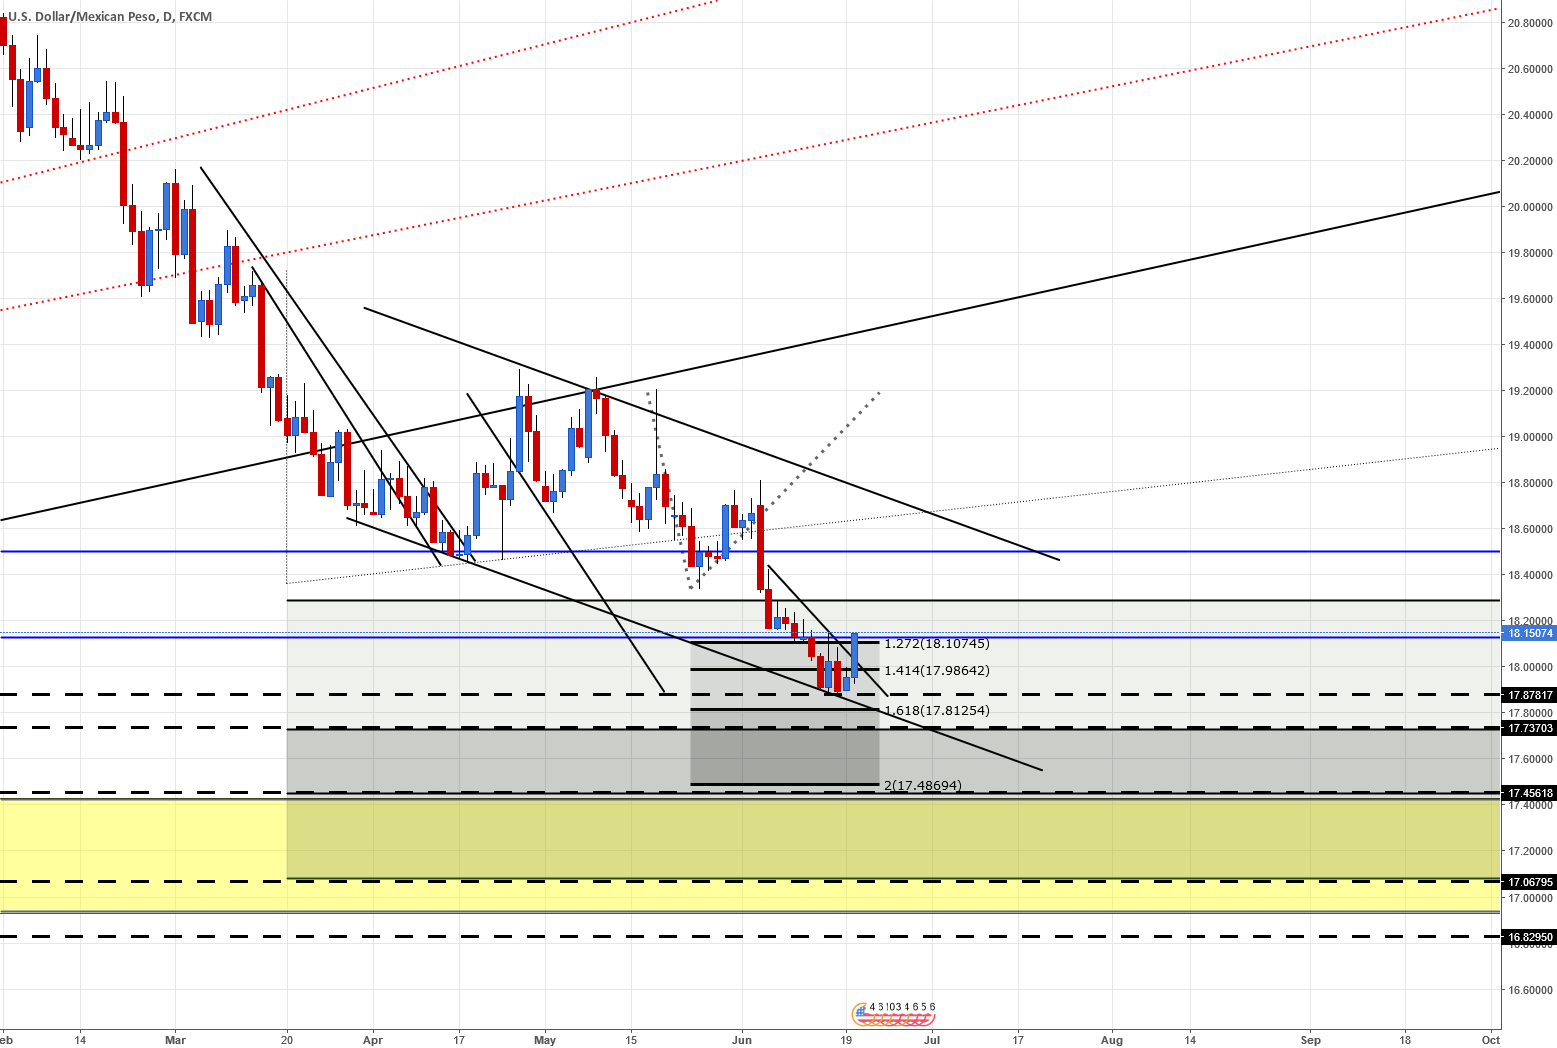 USDMXN look like som pot reversal